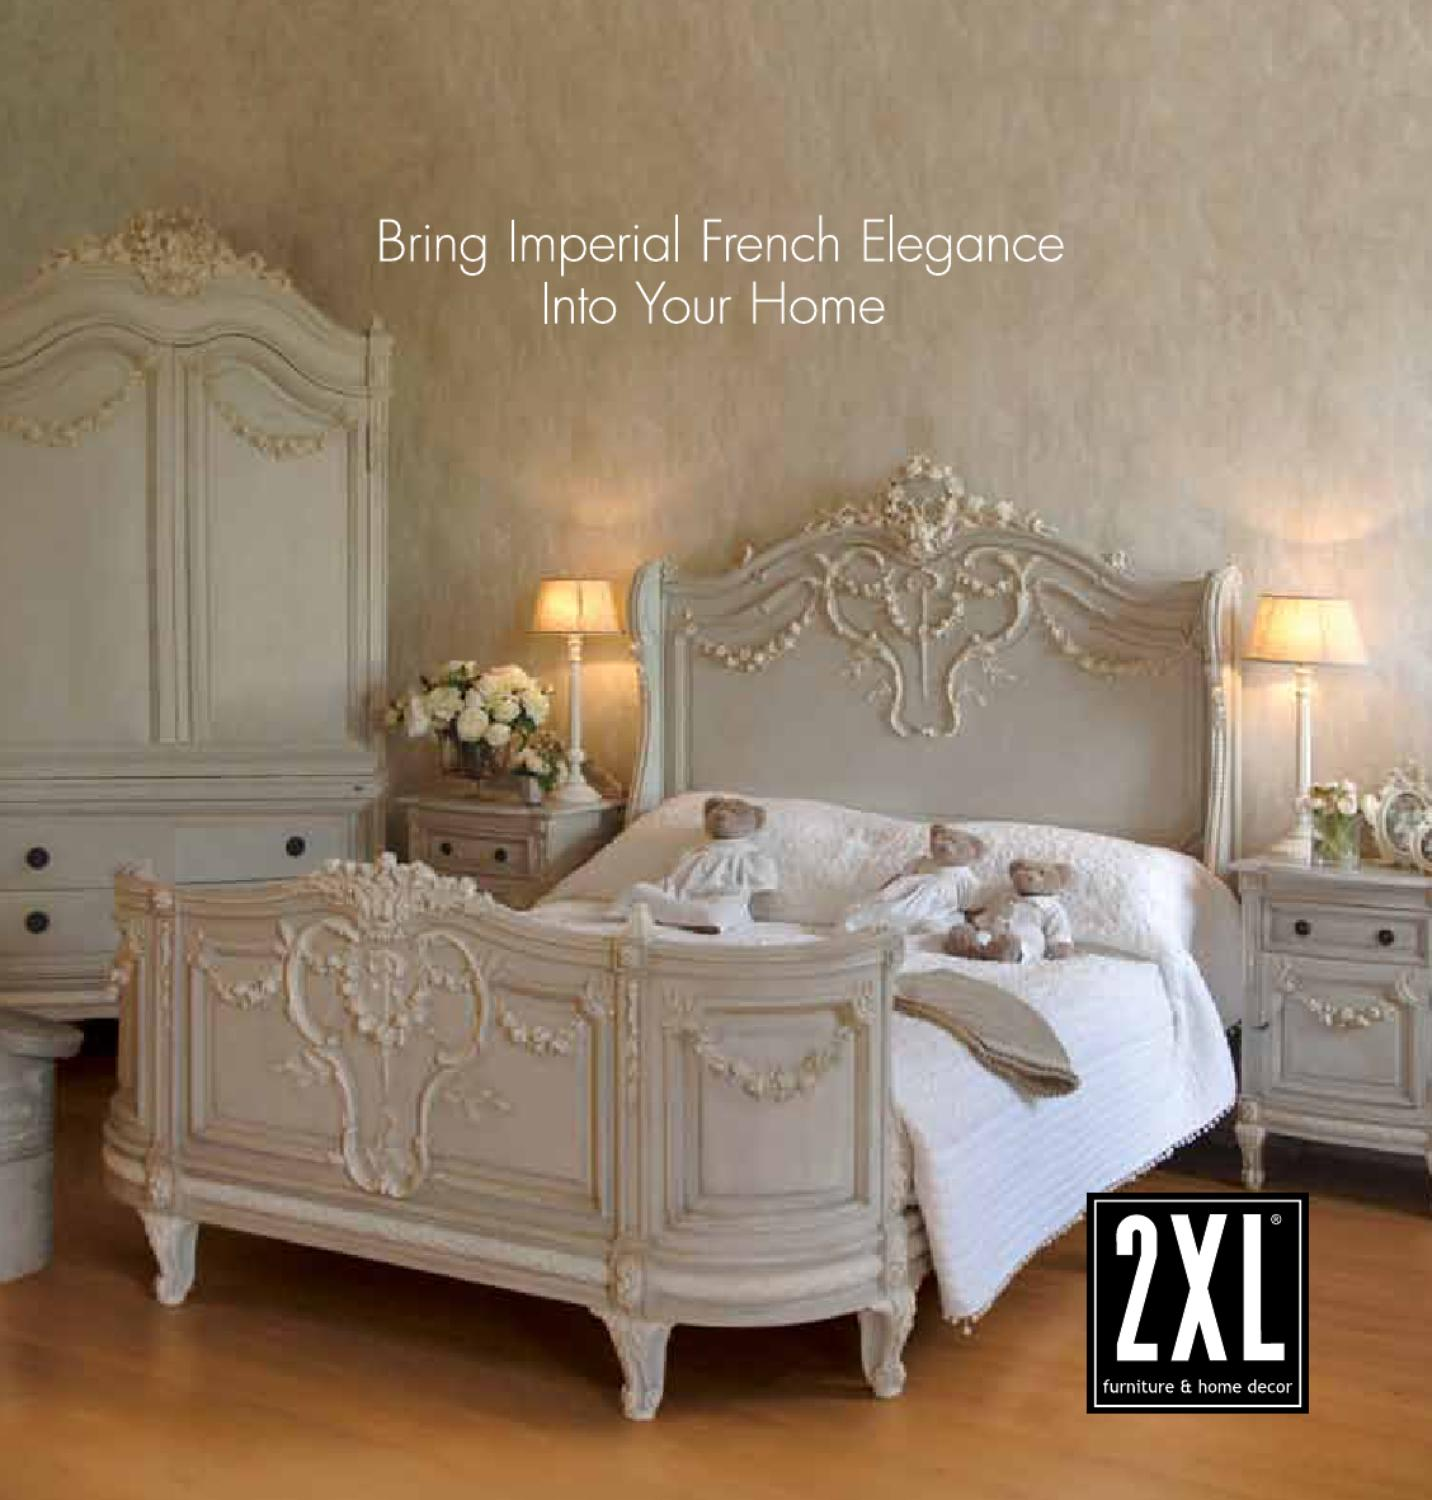 2xl furniture home decor by hot media issuu for All home decor furniture